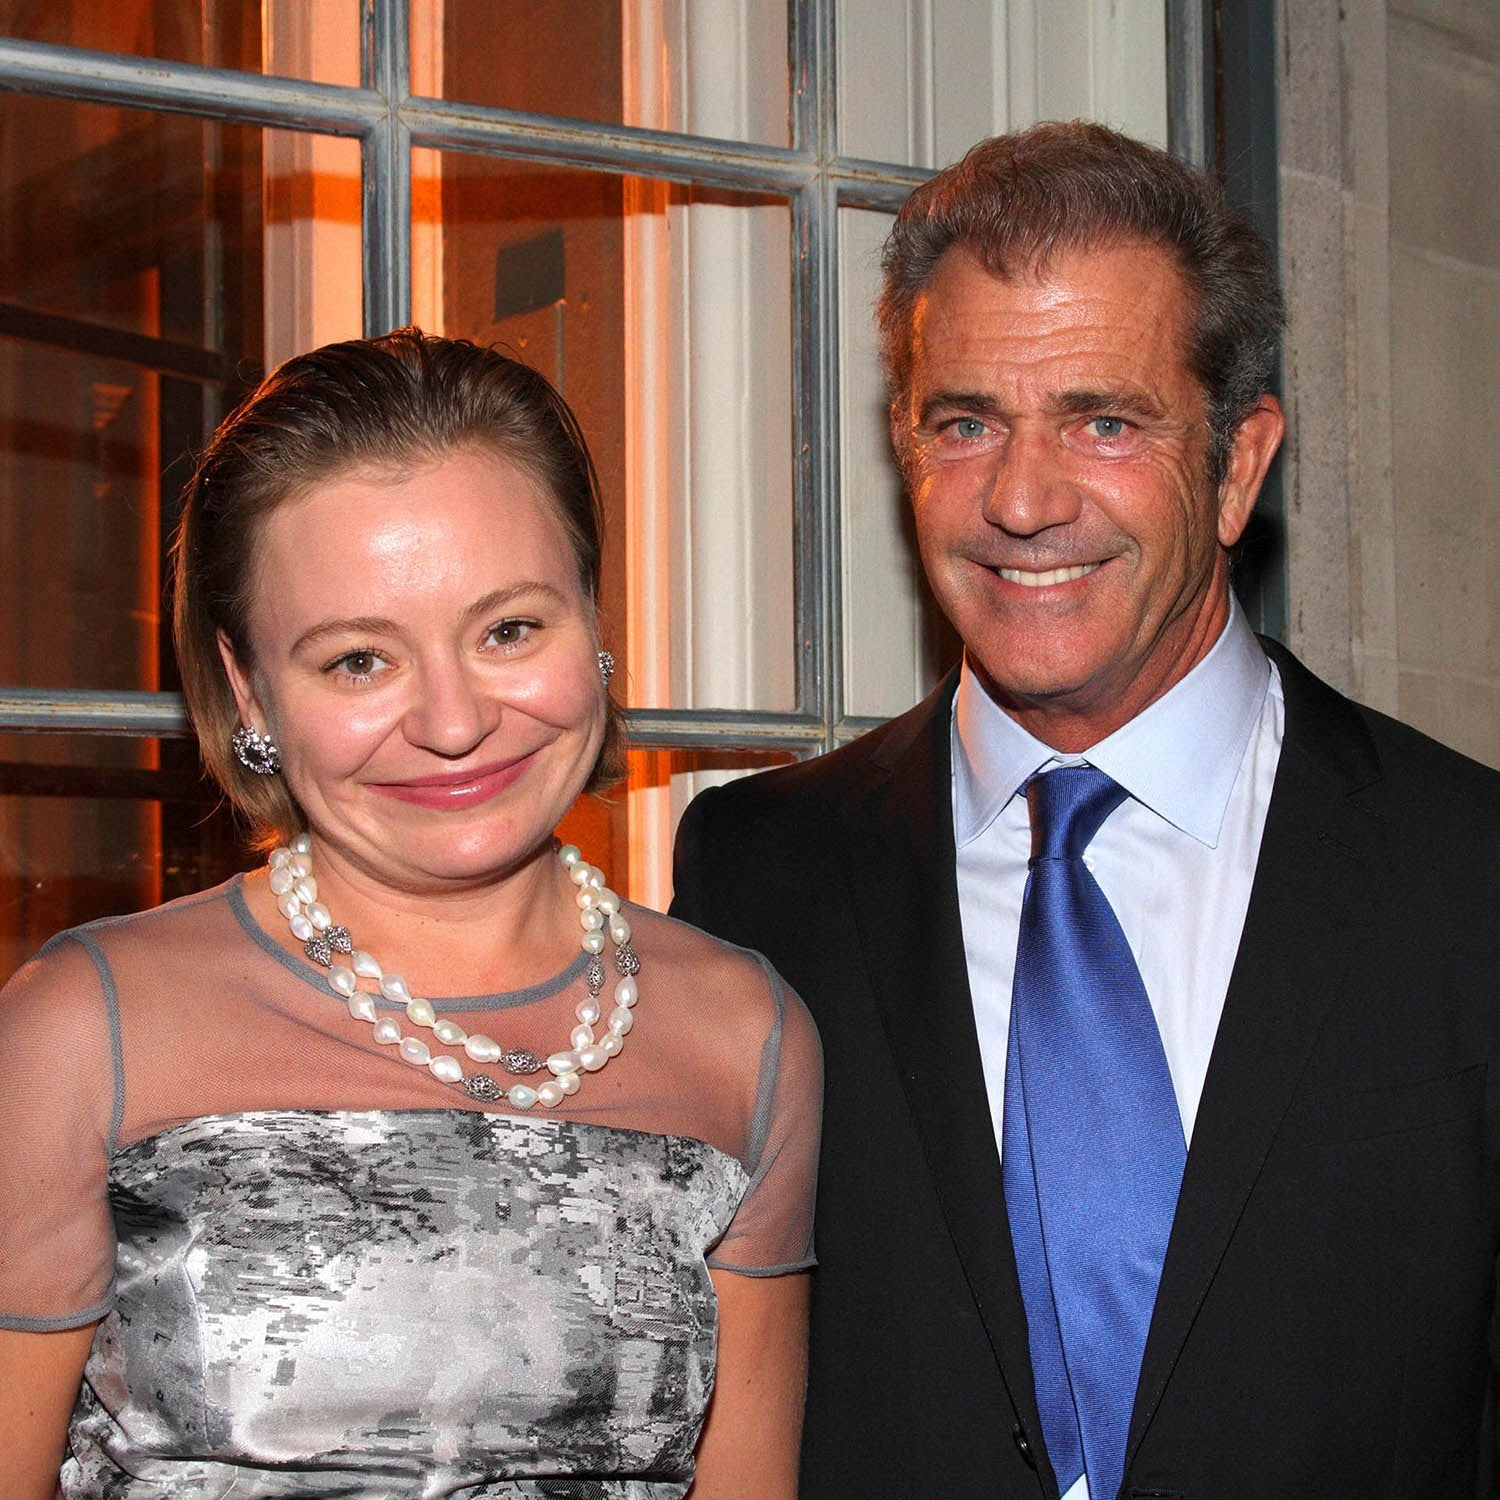 MEL GIBSON AND MARIA SOLIDER